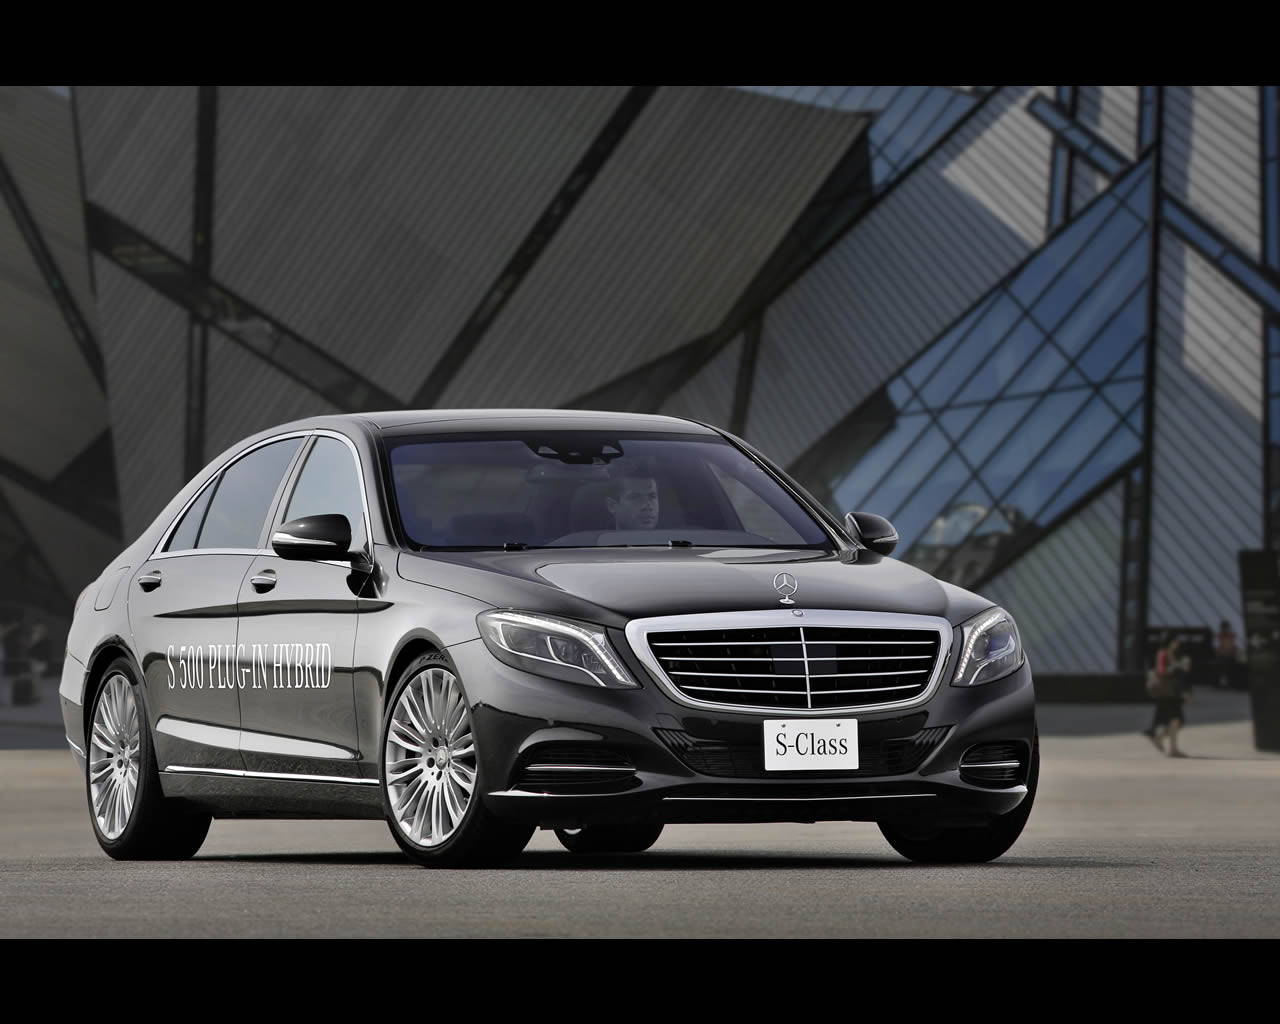 2019 Mercedes Benz S500 Plug in Hybrid Concept photo - 2